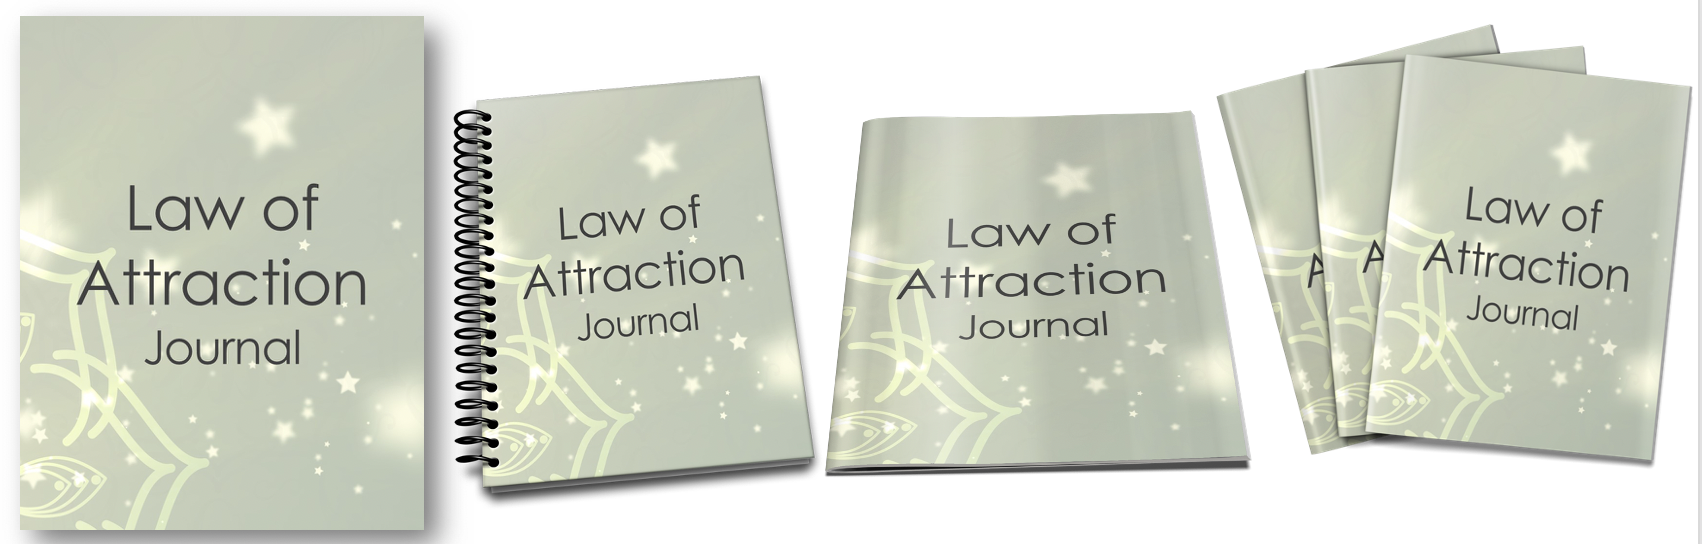 Law of Attraction Journal Covers